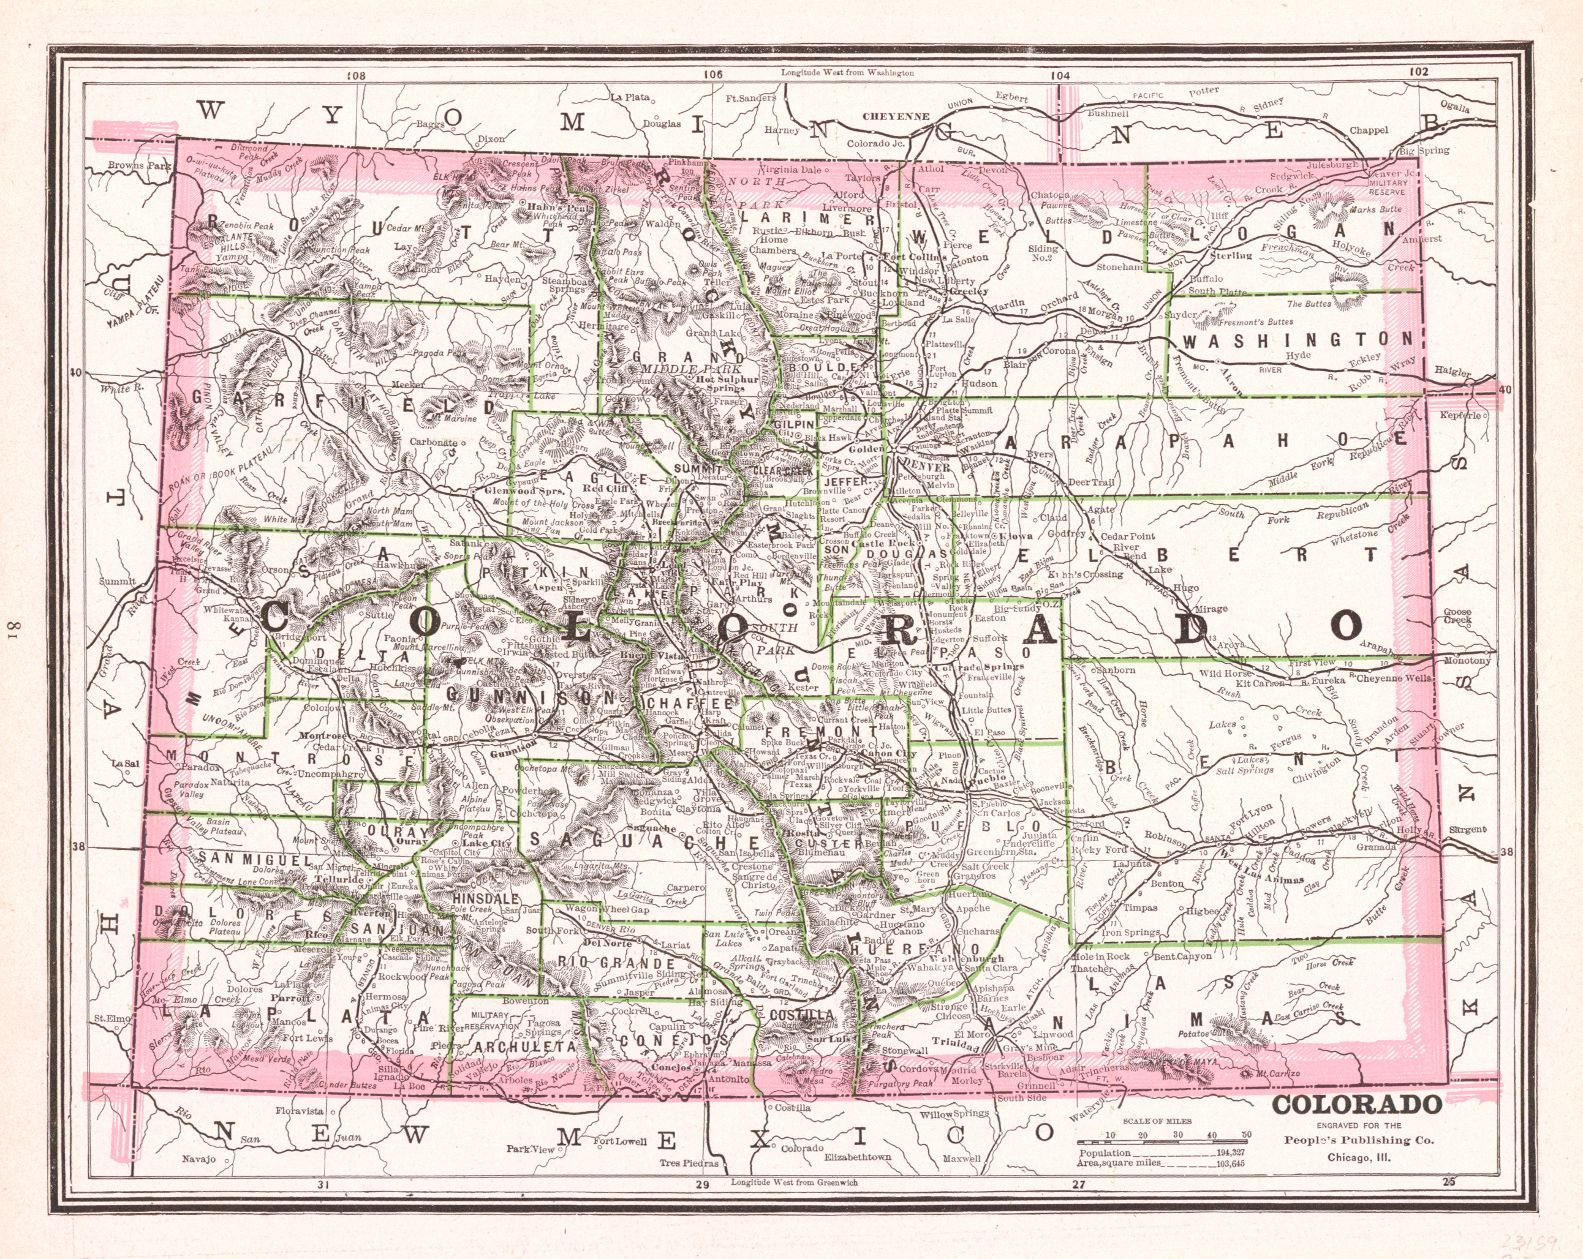 """Map Antique. Colorado.  People's Publishing Co. 1888. Chicago.  """"engraved for the People's Publishing Co. Chicago, Ill."""" 81. Good topographic detail. New Mexico on reverse."""